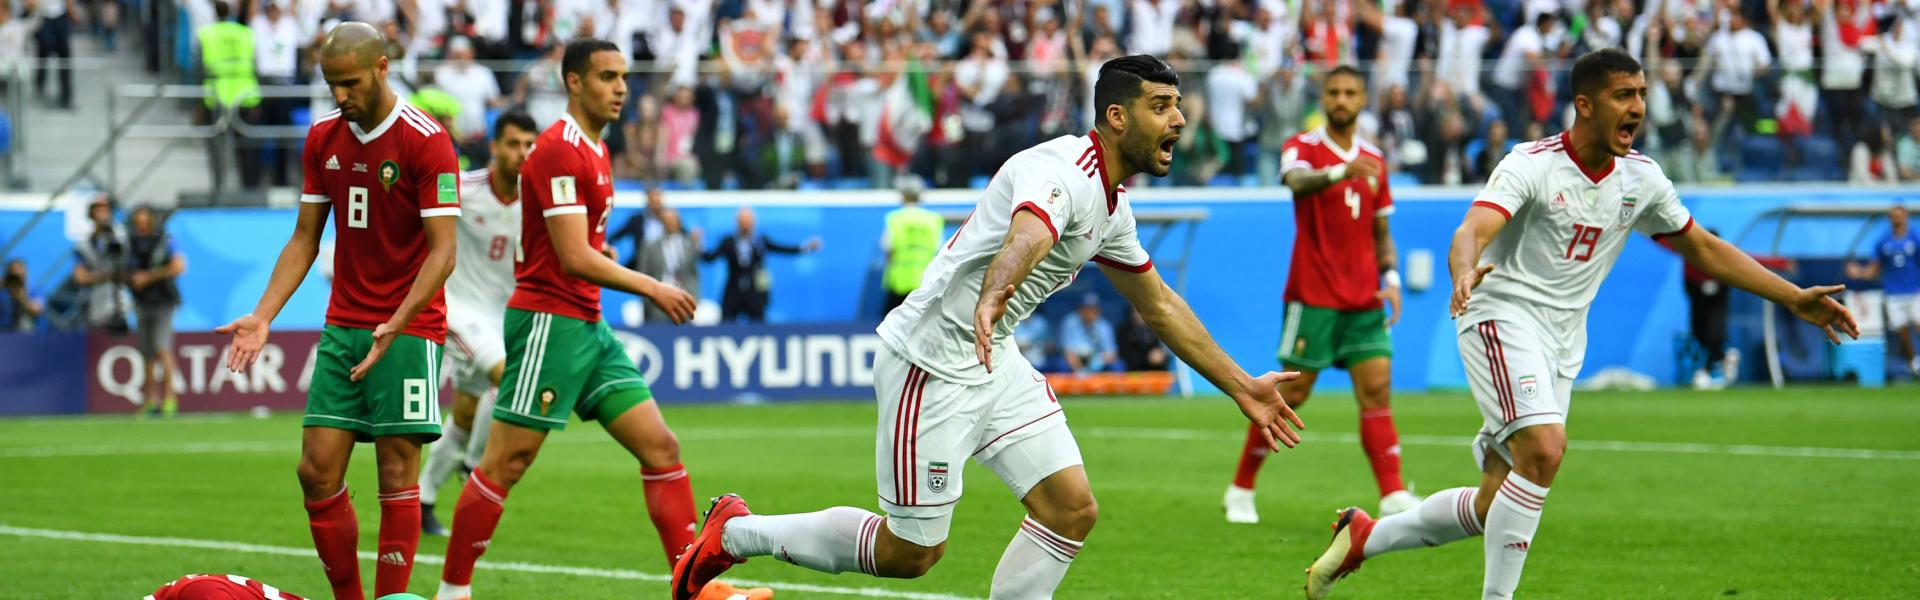 Morocco's Aziz Bouhaddouz looks dejected after scoring an own goal for Iran's first goal as Iran's Mehdi Taremi and Majid Hosseini celebrate.